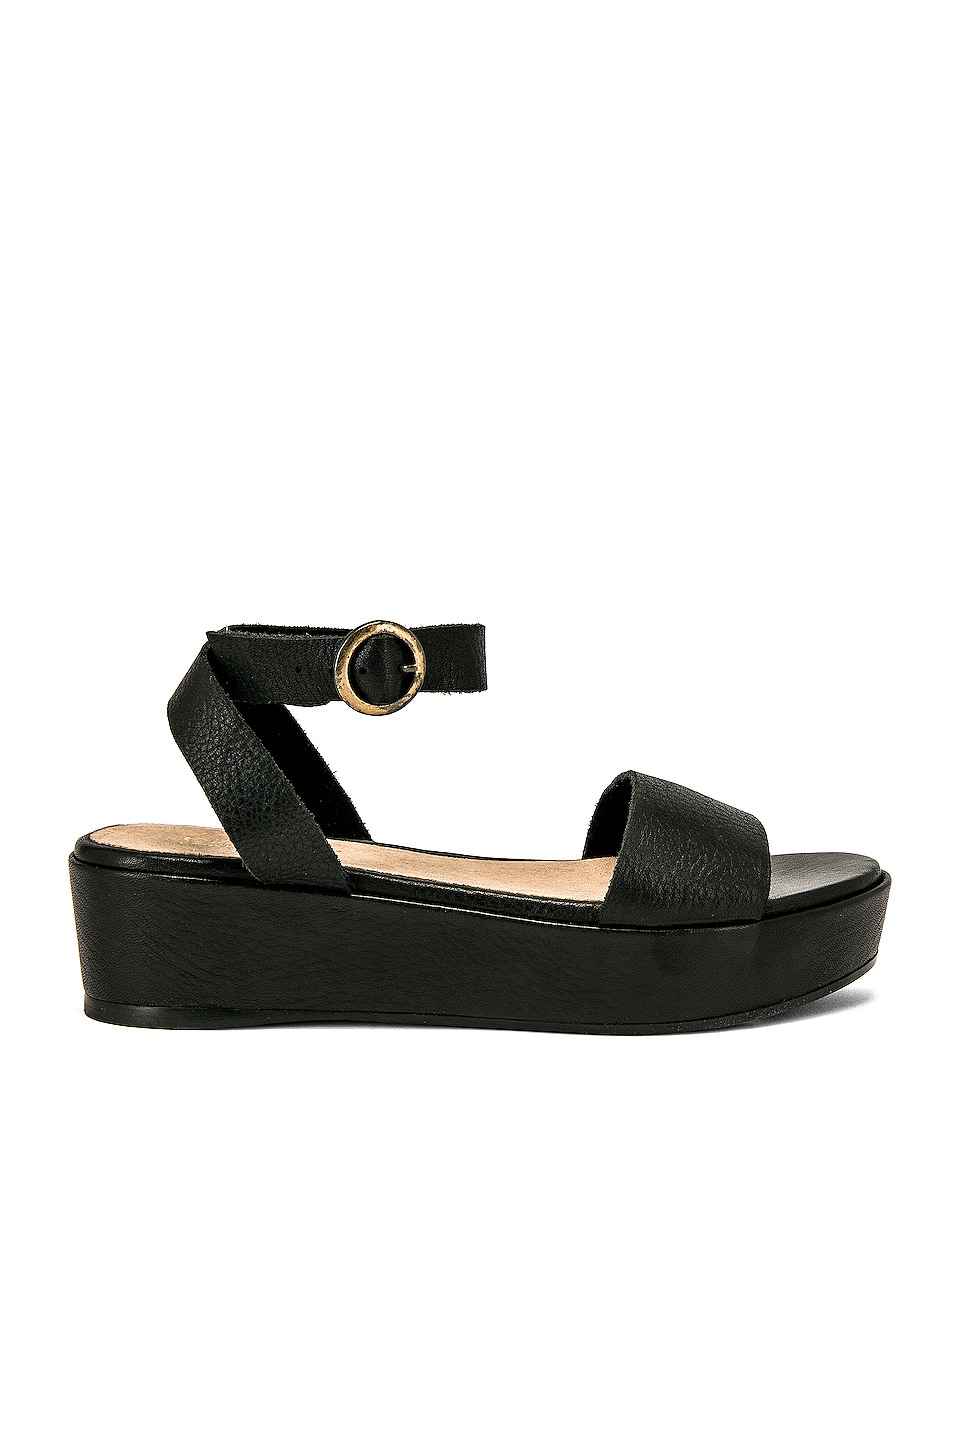 Seychelles Monogram Flatform in Black